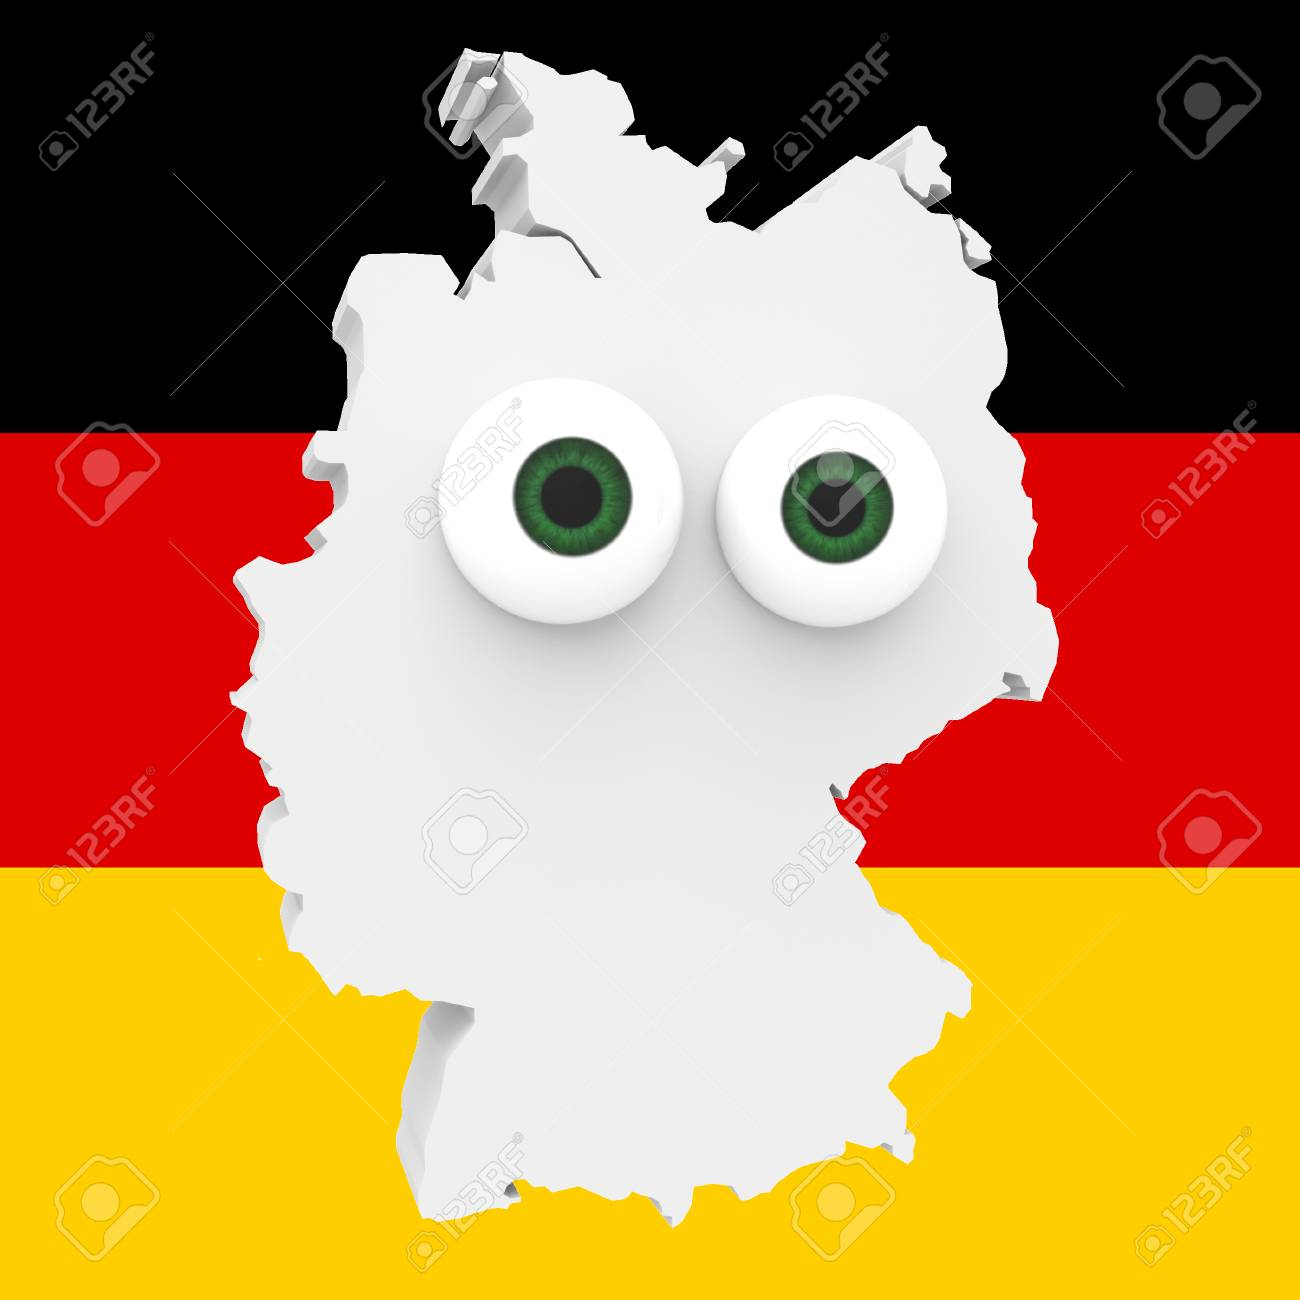 Cartoon Map Of Germany.Cartoon Country Map Germany With Big Eyes German Flag In Background